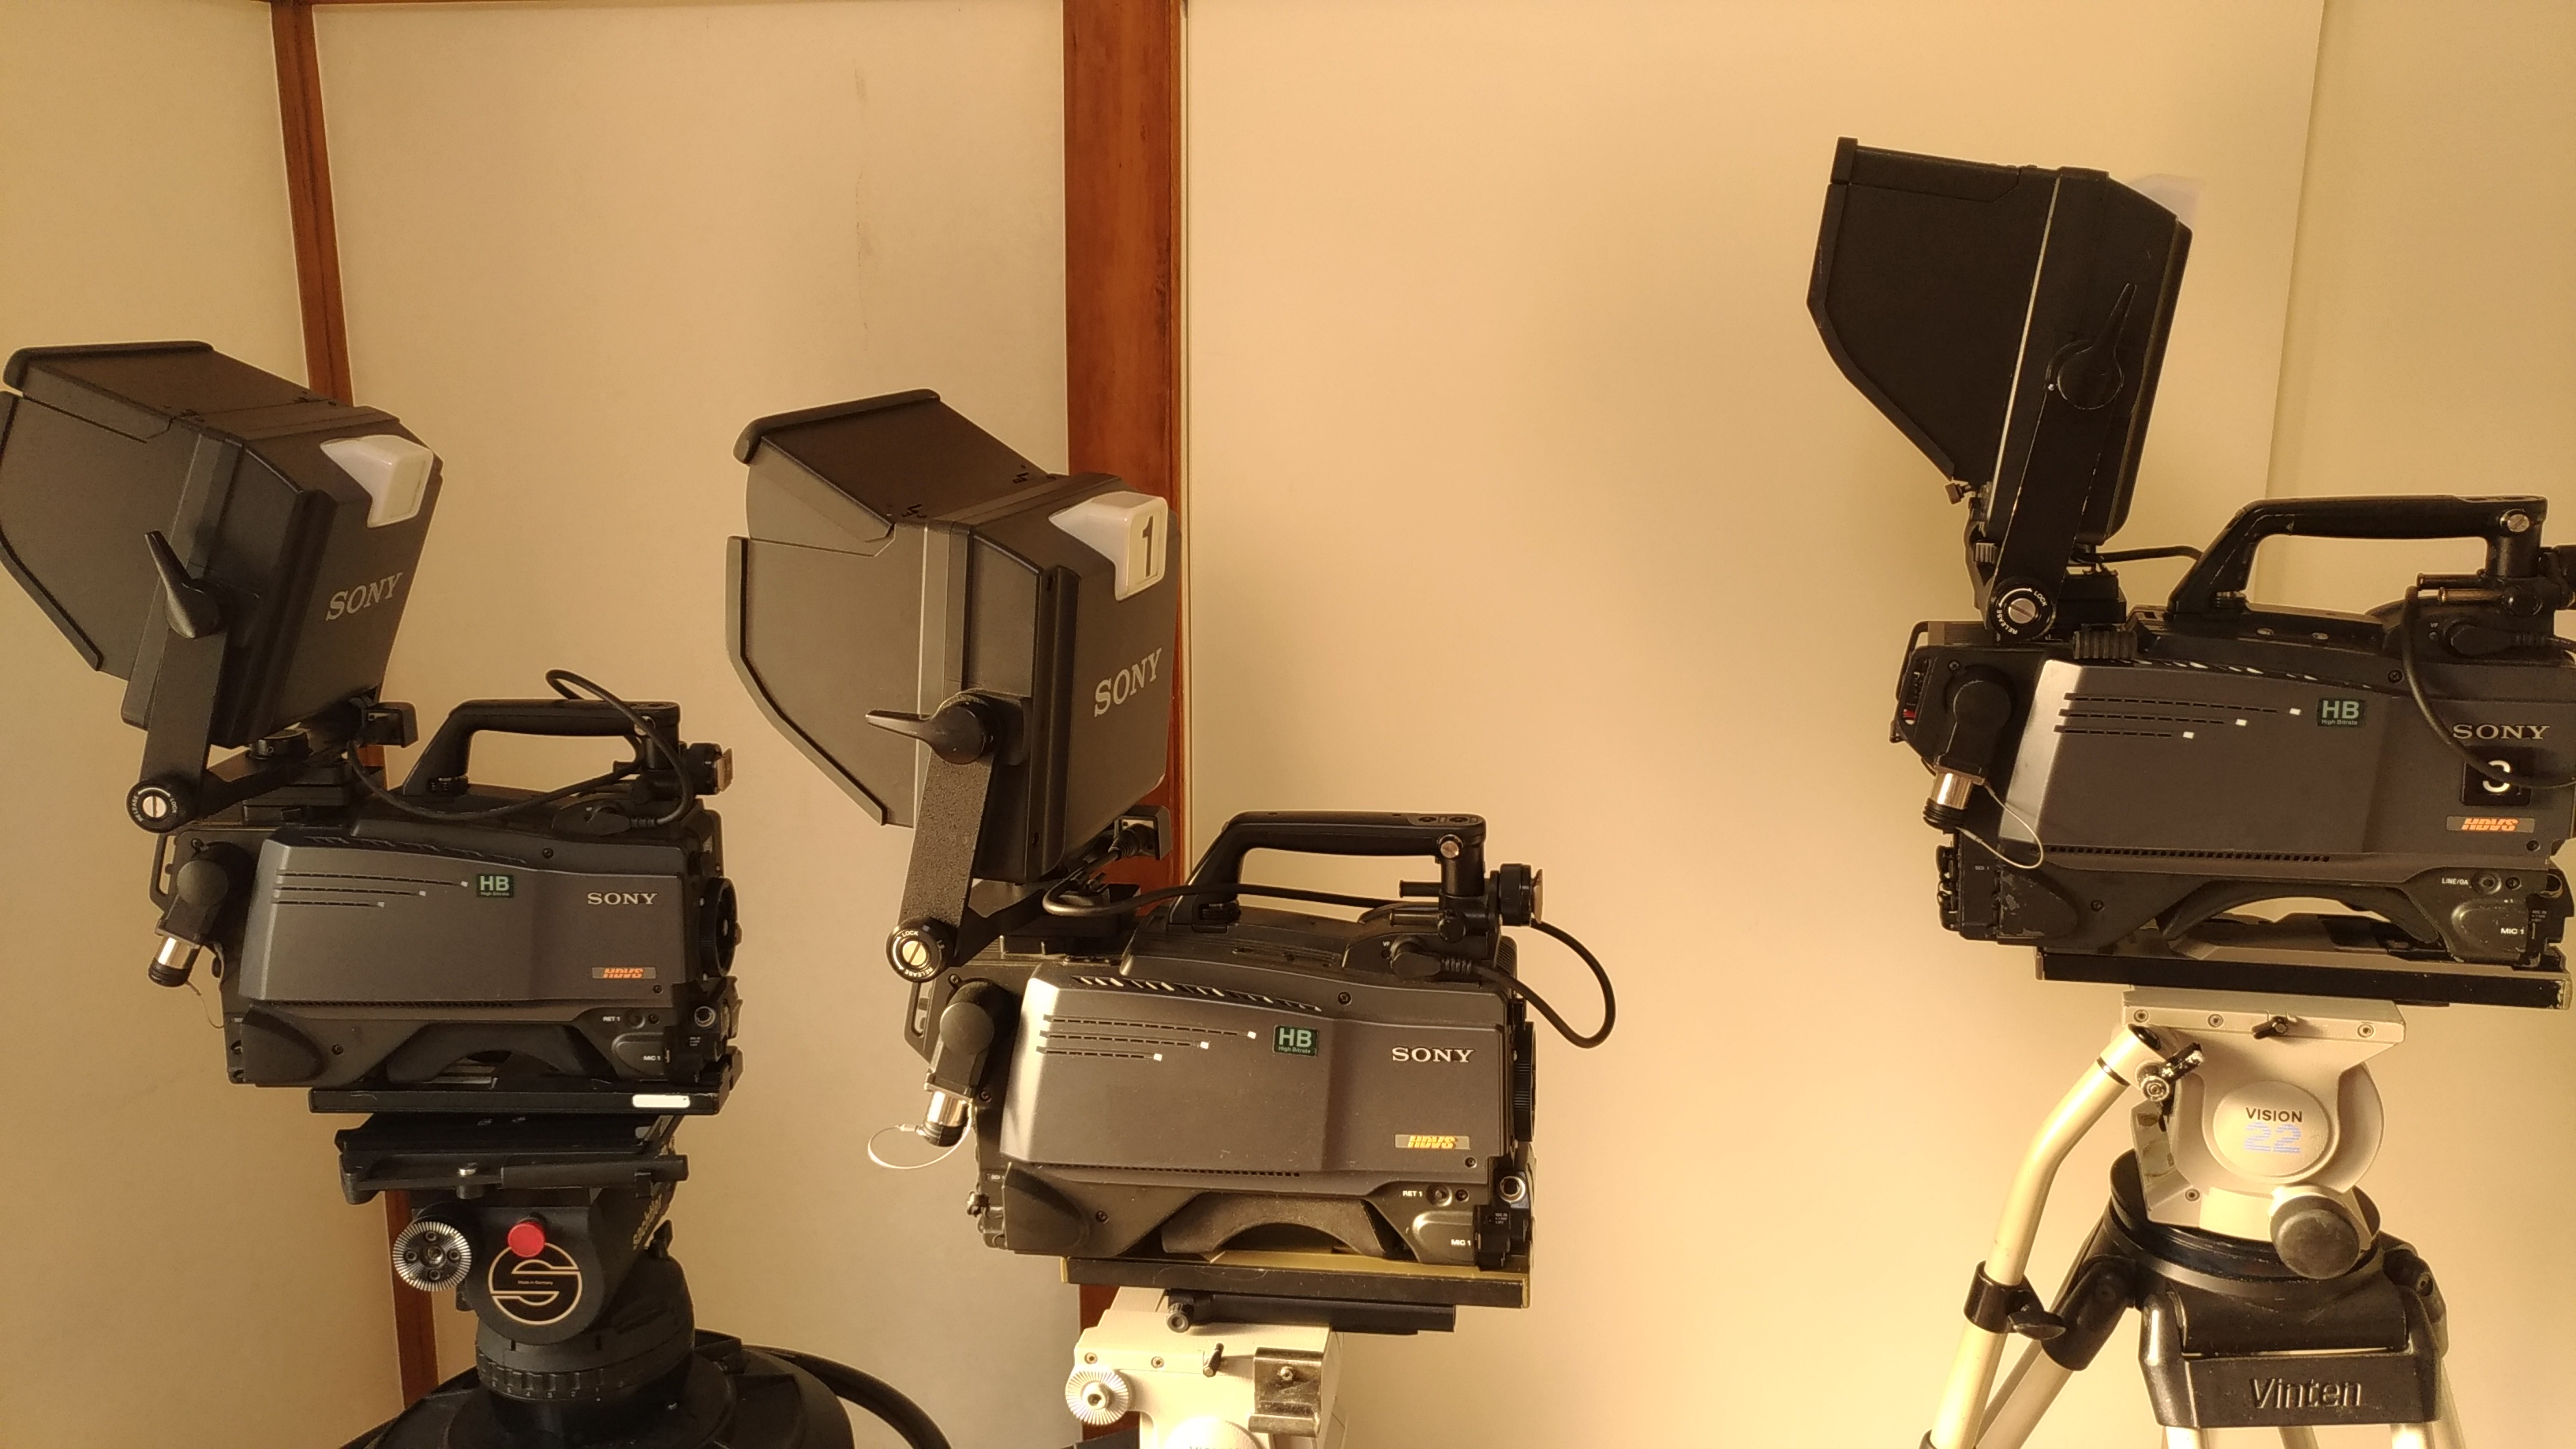 Full studio HD camera chains, lenses, support 4 to 5 x Sony HDC-1500 HighBitrate chains, lenses, tripods - Image #1